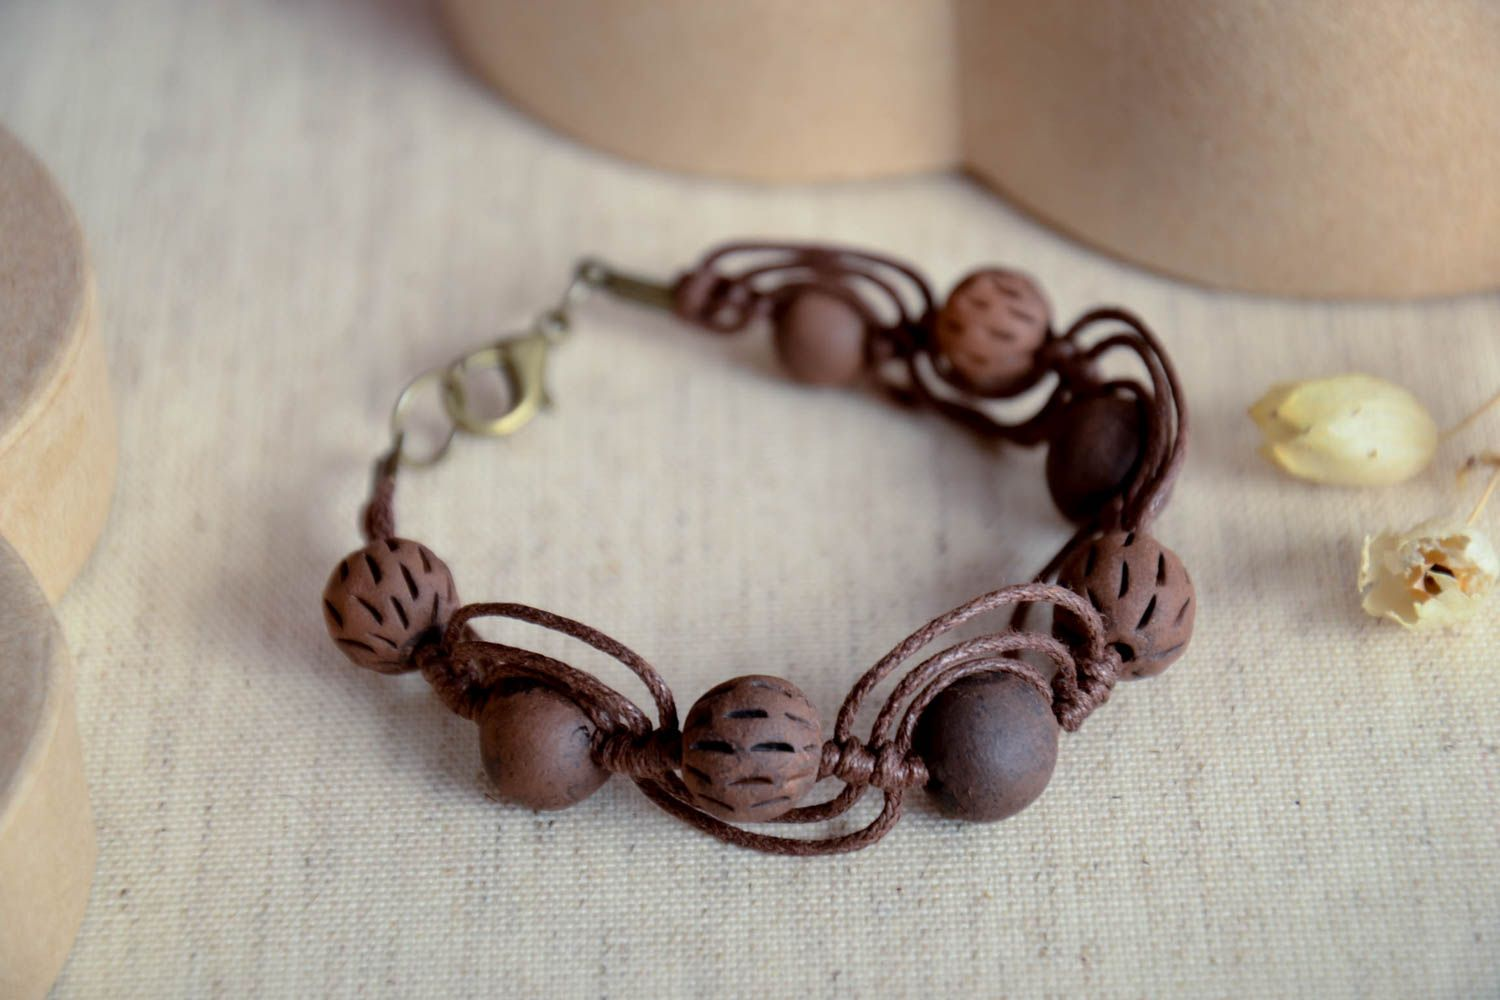 clay bracelets Handmade ceramic bracelet clay beaded bracelet eco friendly accessories - MADEheart.com